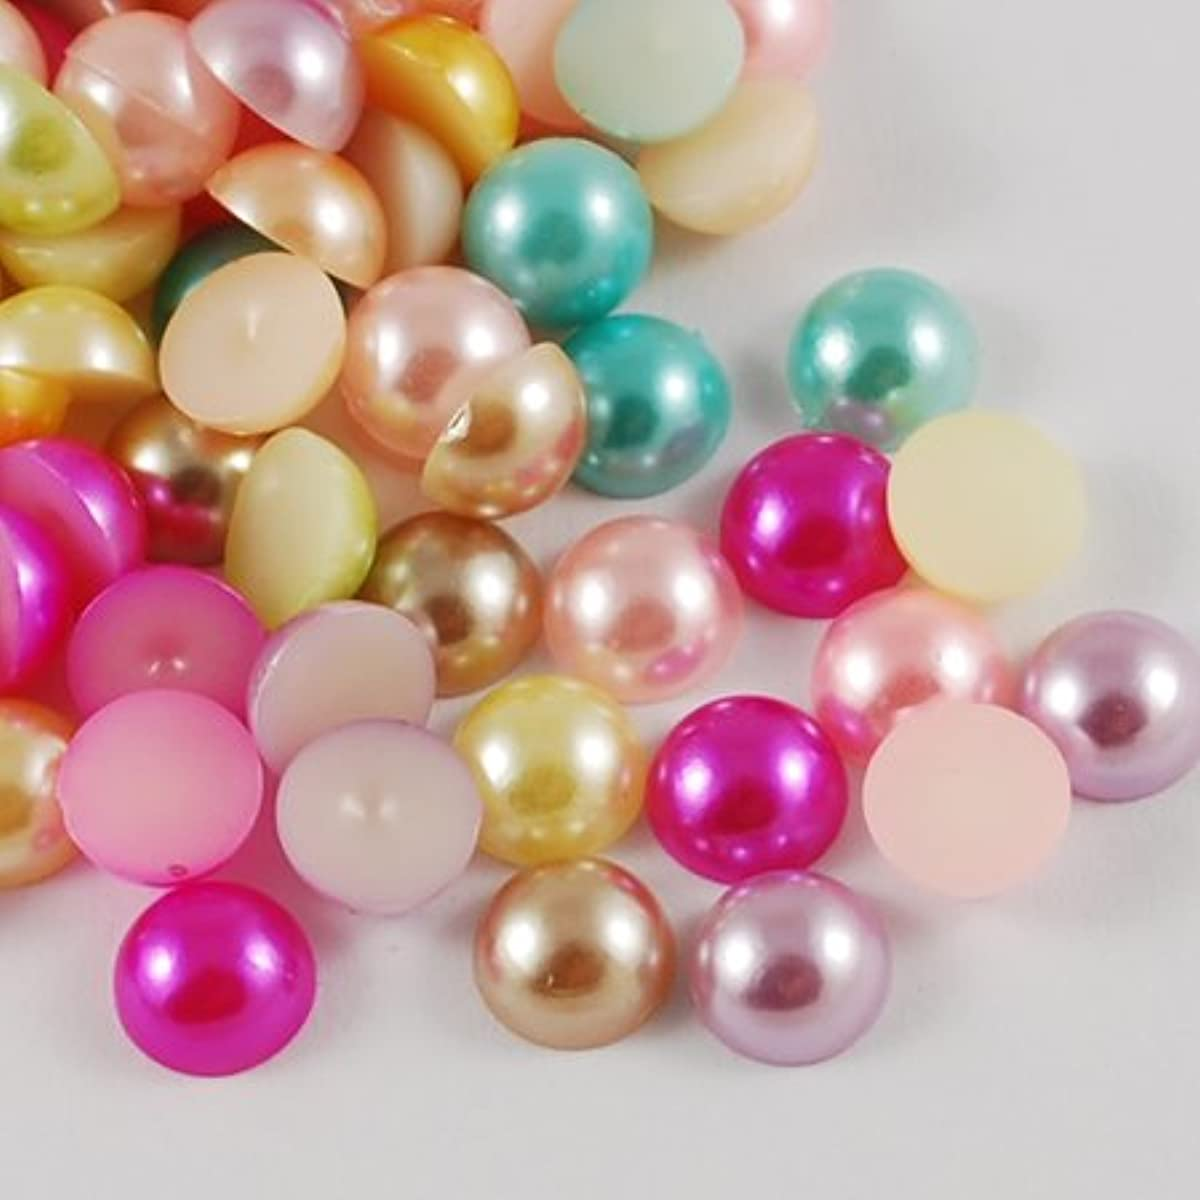 200pc Pearl Assortment Color Acrylic Kawaii Flat Back Cabochons Stones for Jewelry Making, Crafts (Round, 10mm)